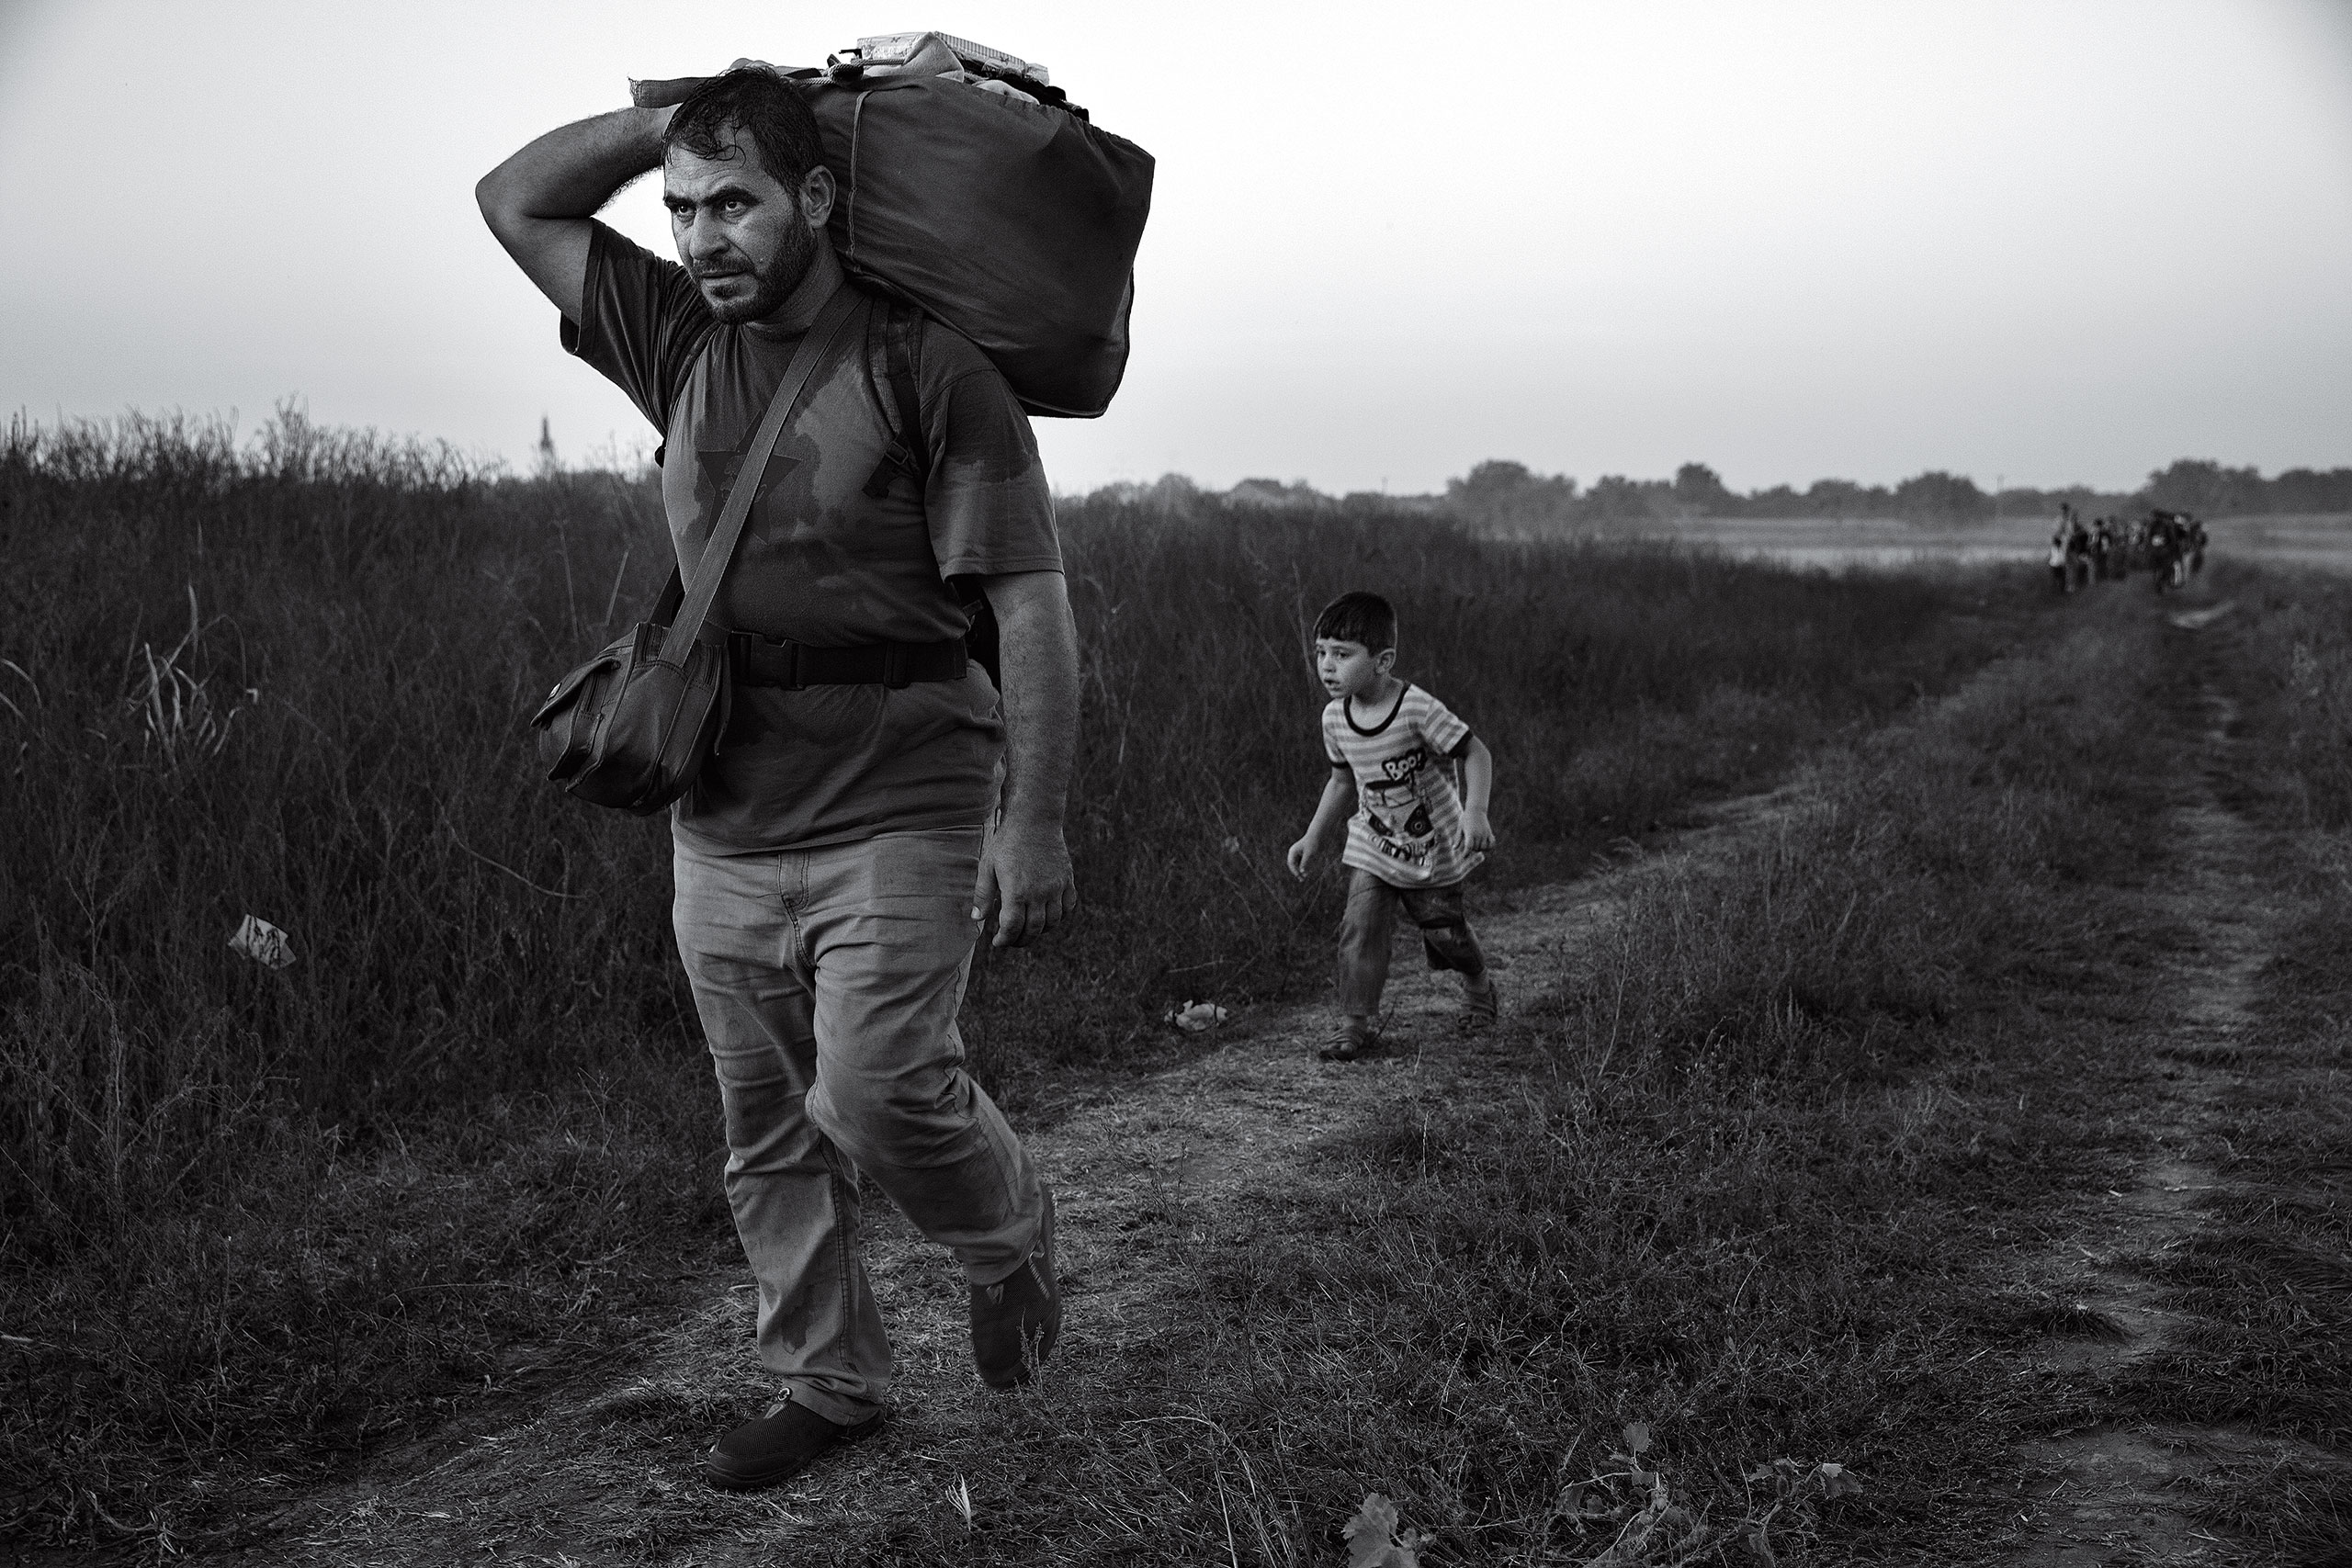 A man walks with his son behind him as they make their way to the train station in Tovarnik, Croatia, on the border with Serbia. In the Balkans, many migrants began traveling by foot, echoing more ancient journeys, Sept. 17, 2015.From  James Nachtwey: The Journey of Hope